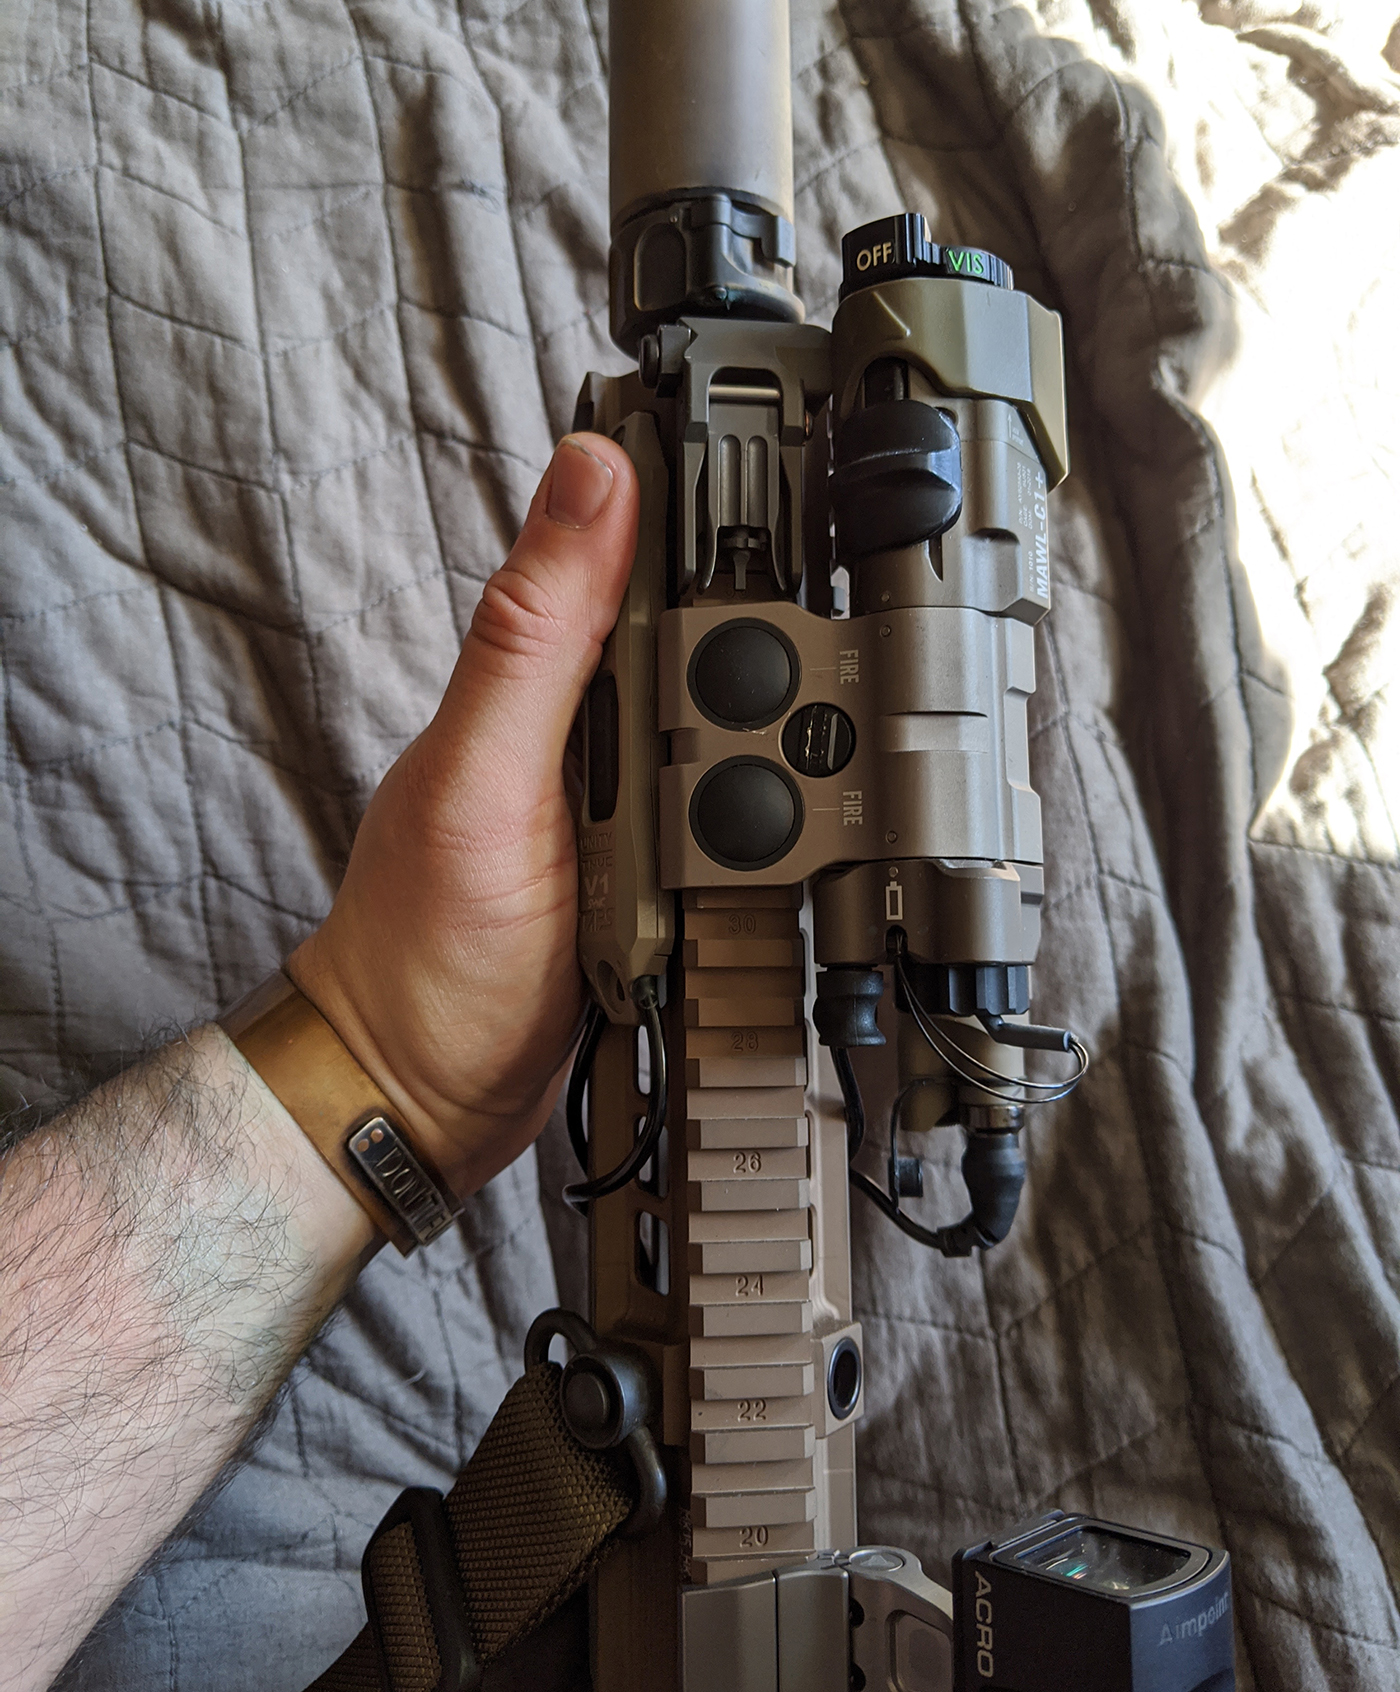 Unity Tactical TAPS on DARC informed HK416 with MAWL, Aimpoint Acro, Elcan SpectreDR, Surefire Scout, and other accessories configured for CQB.